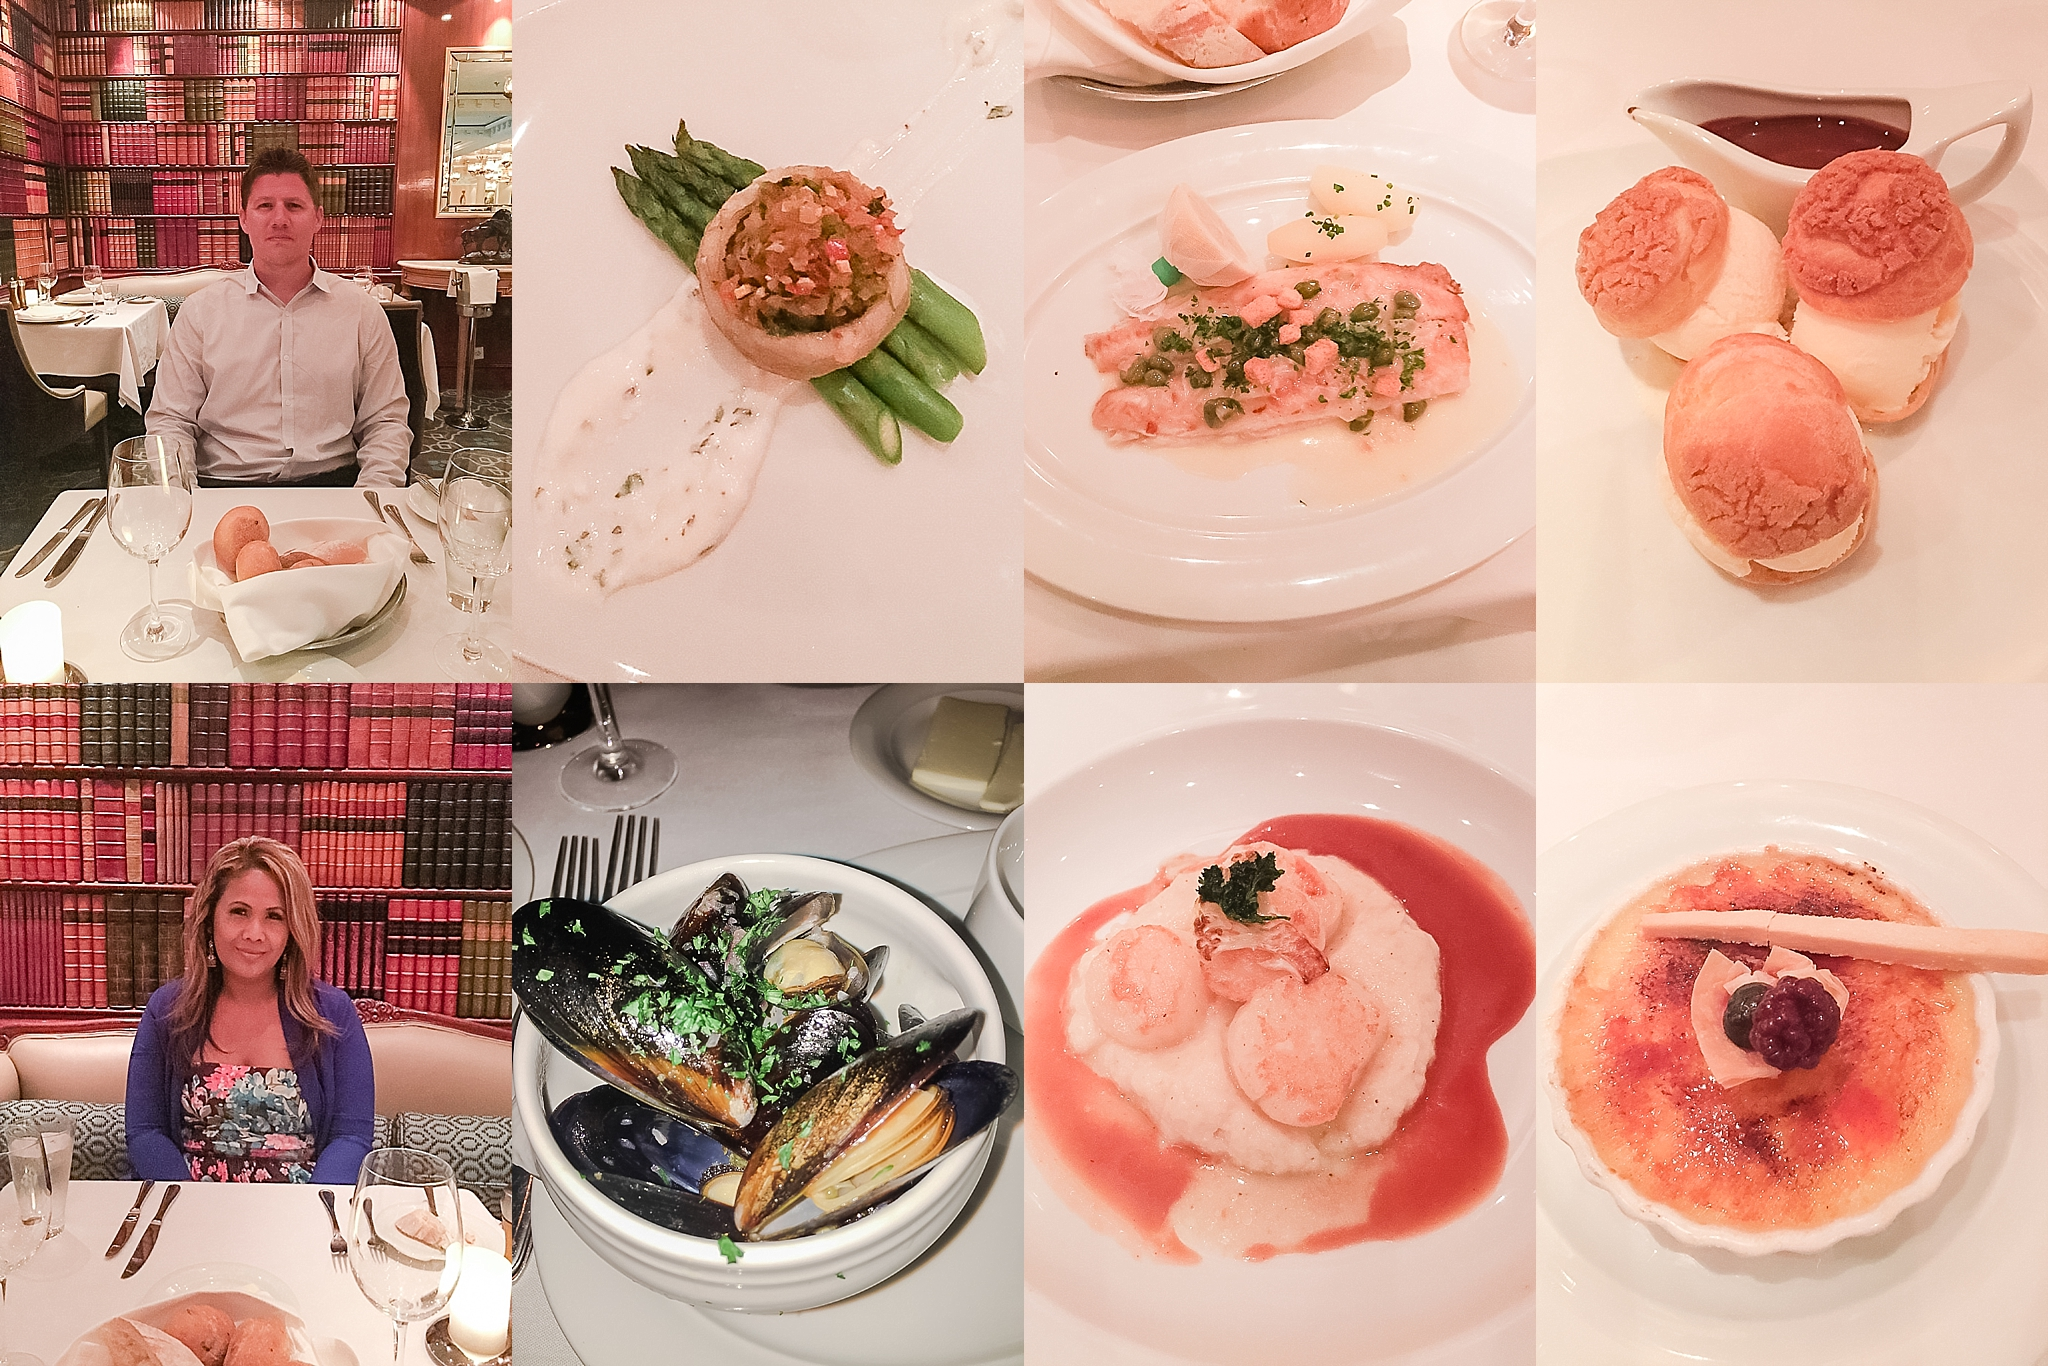 Dinner at Jefferson's Bistro on the Pride of America cruise ship. Photos by Jade Min Photography.